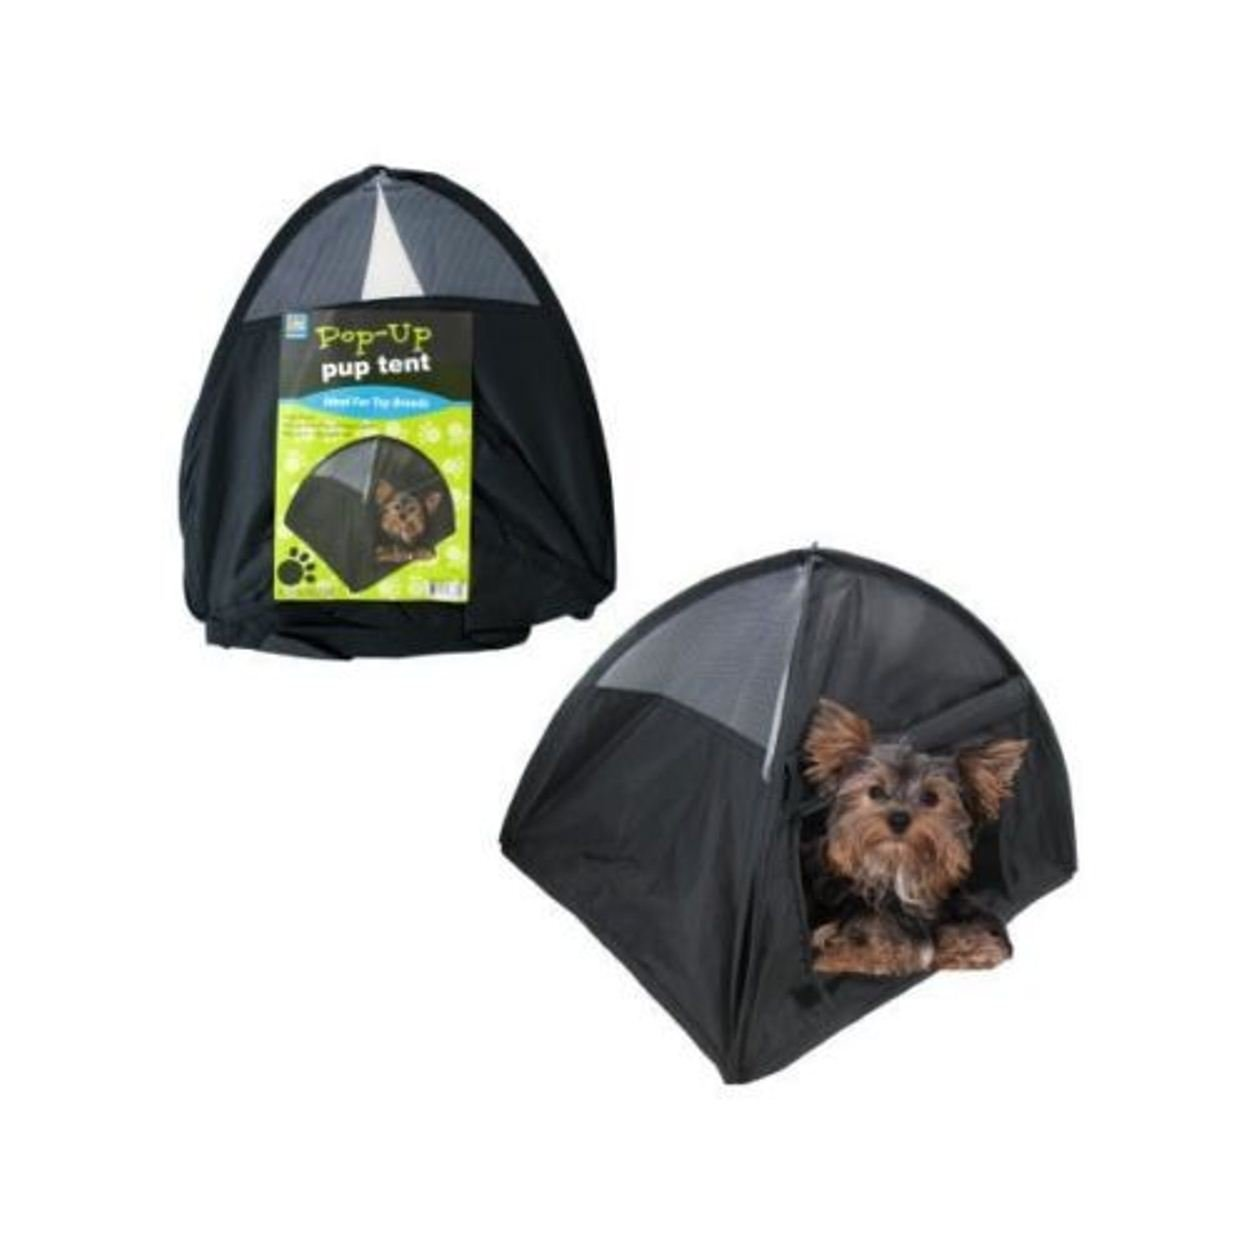 Amazon.com  NEW Small Pop Up C&ing Tent 14 Inch Black Nylon DOG Puppy Pet Cat Bed  Pet Supplies  sc 1 st  Amazon.com & Amazon.com : NEW Small Pop Up Camping Tent 14 Inch Black Nylon DOG ...